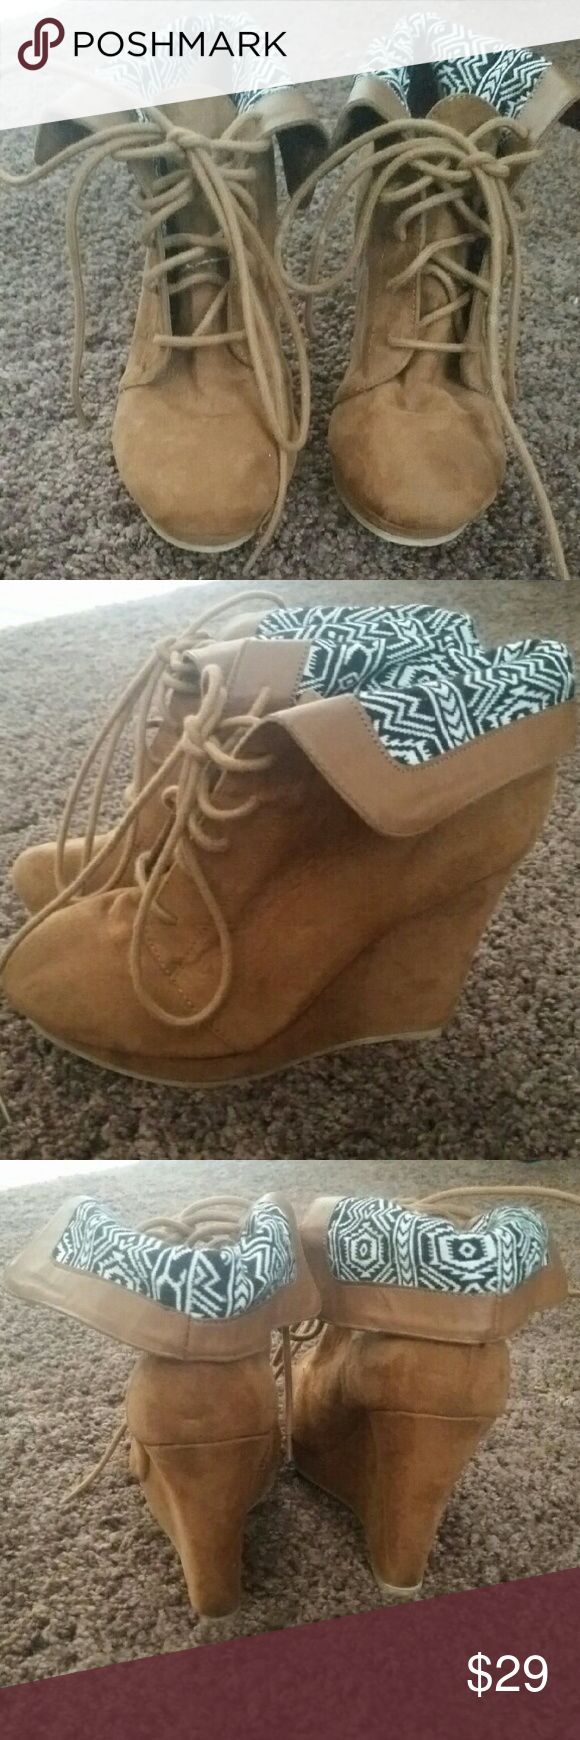 Tan wedge booties Tan lace up wedge booties, slight platform, black and white fold-over cuff.   Surprisingly comfortable.  Only worn about 3 times.  Size 7.5 shi Shoes Ankle Boots & Booties